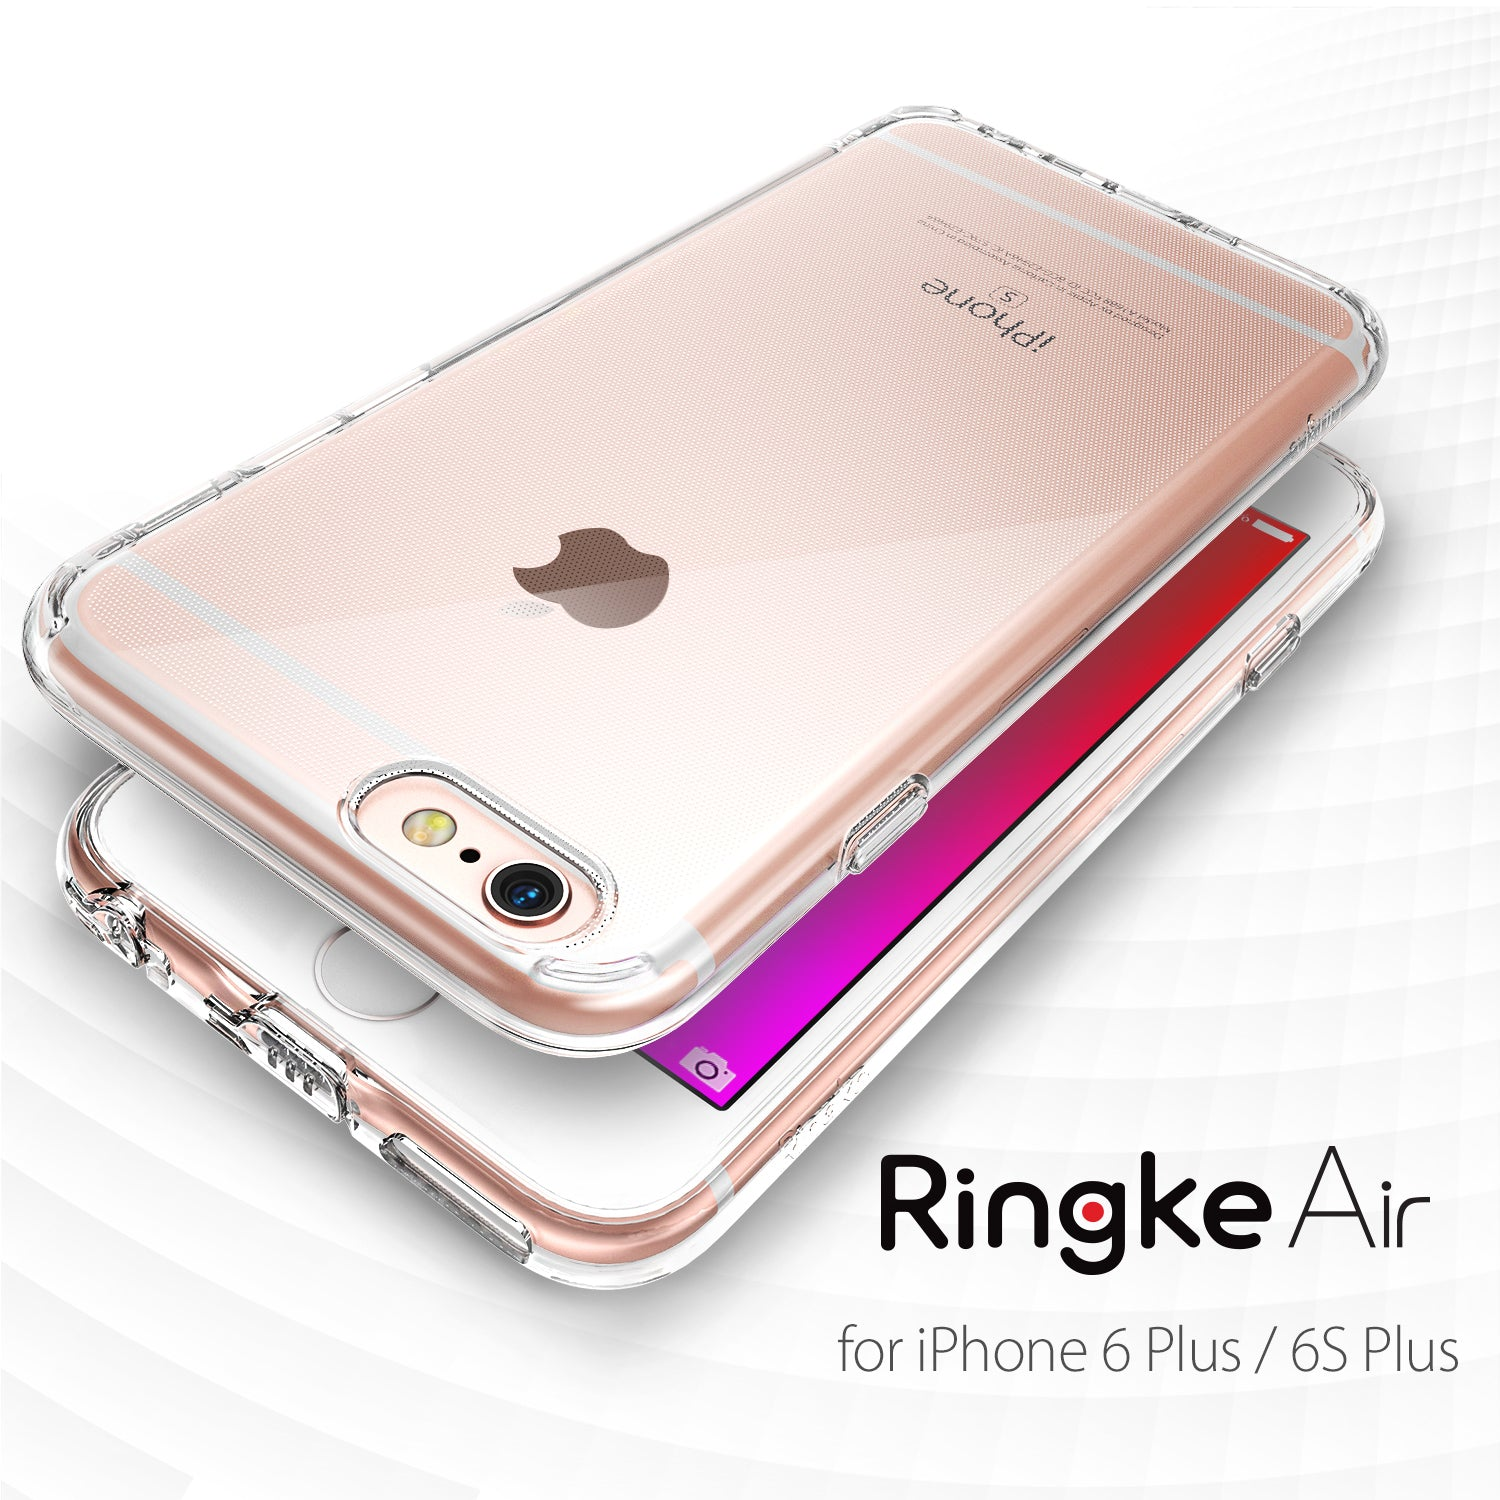 ringke air lightweight thin slim case cover for iphone 6 plus 6s plus main